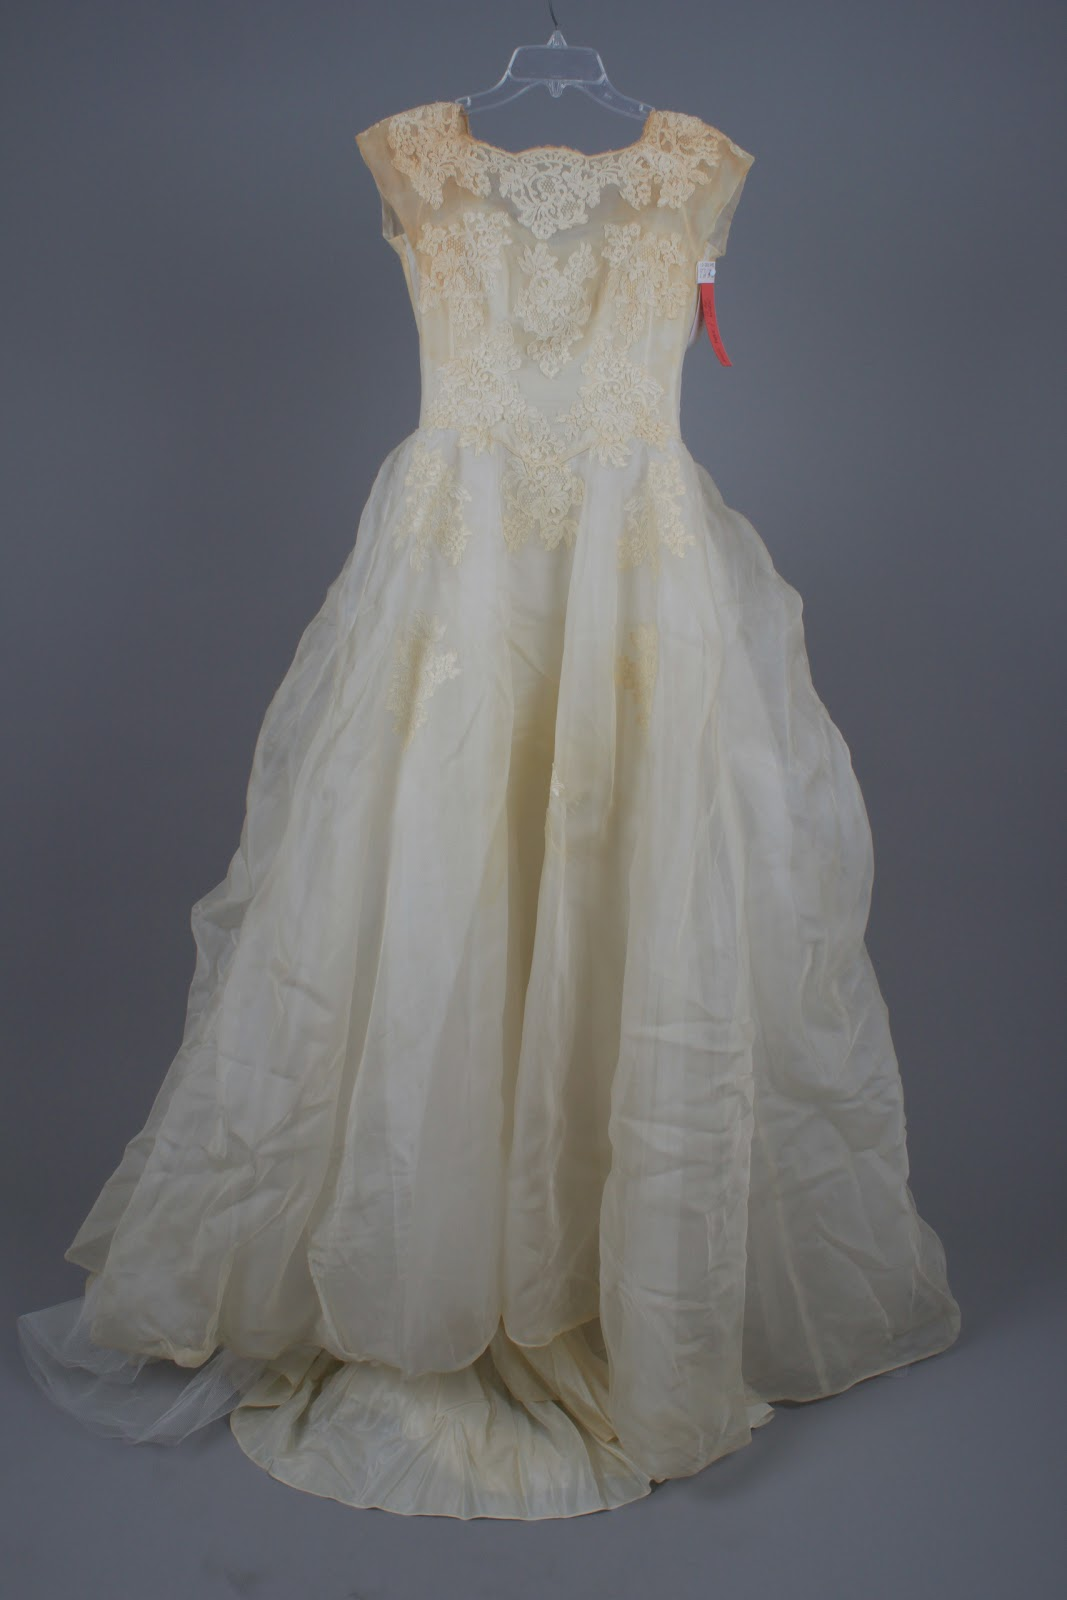 Bridal Gown Cleaning & Preservation: Follow a 50-year-old wedding ...